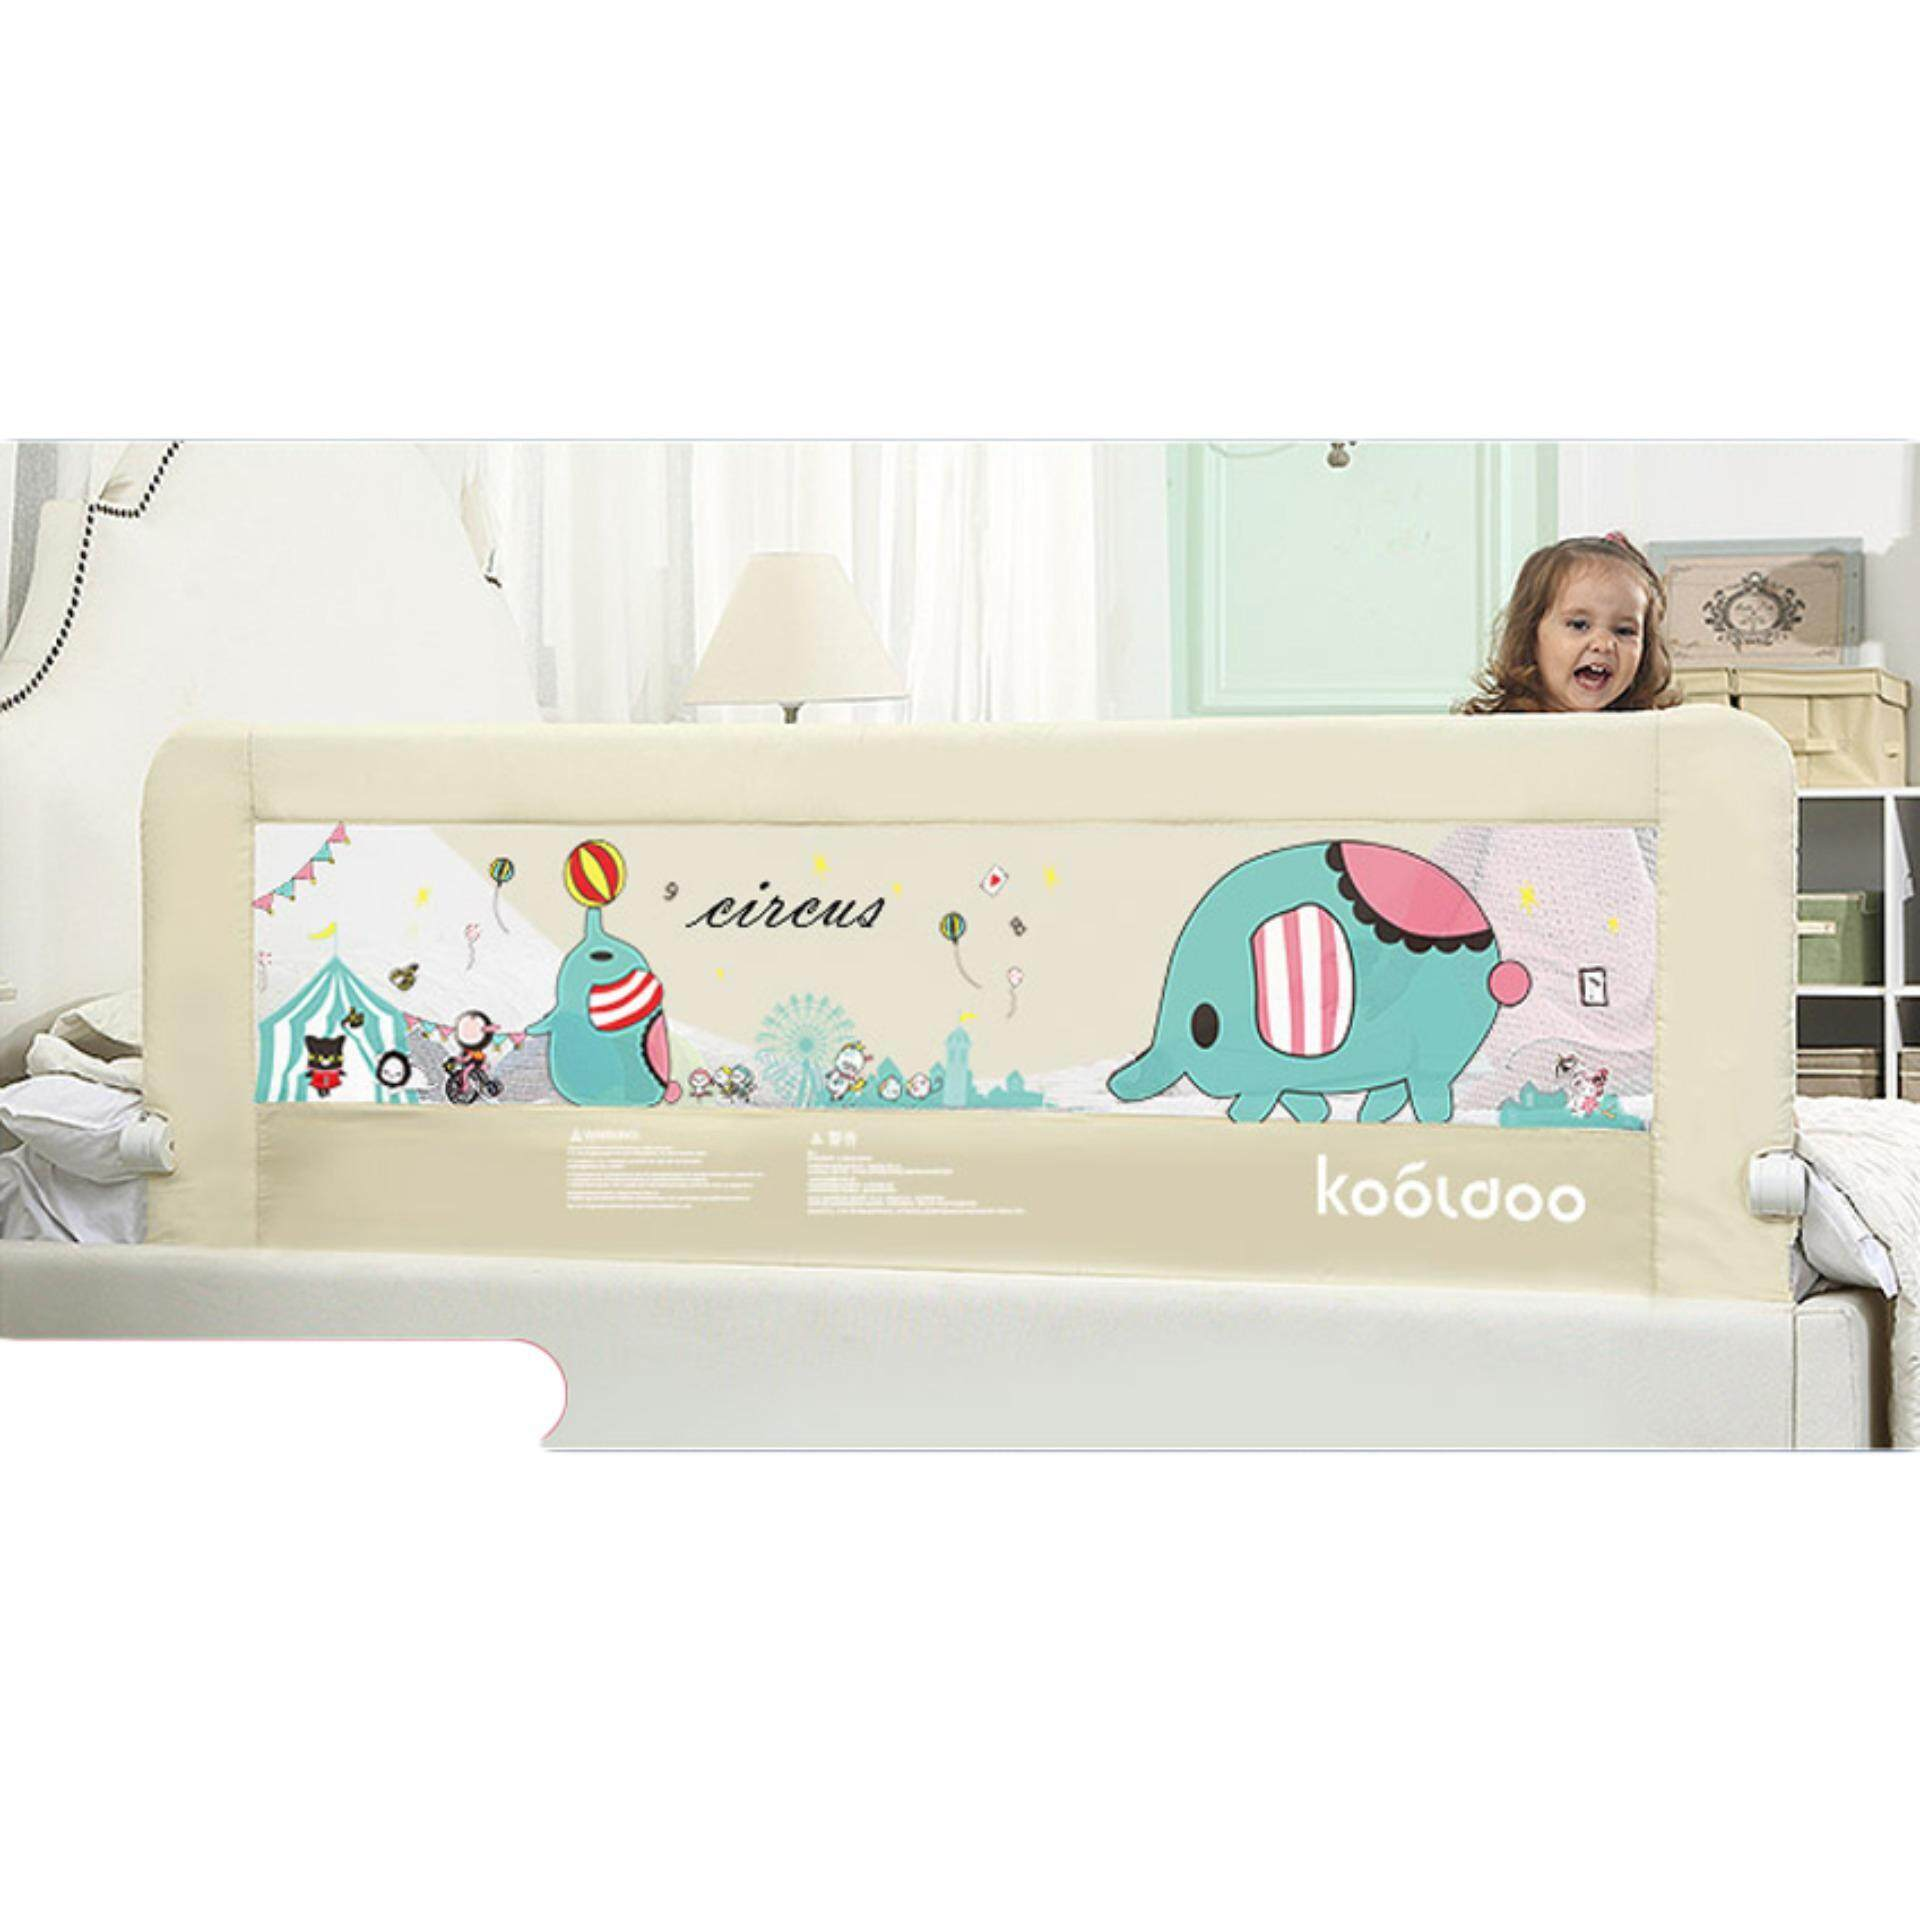 Baby bed rails - Kooldoo T Op Baby Safety Bed Rails Bed Guard Bed Fence 2 0m Lazada Malaysia